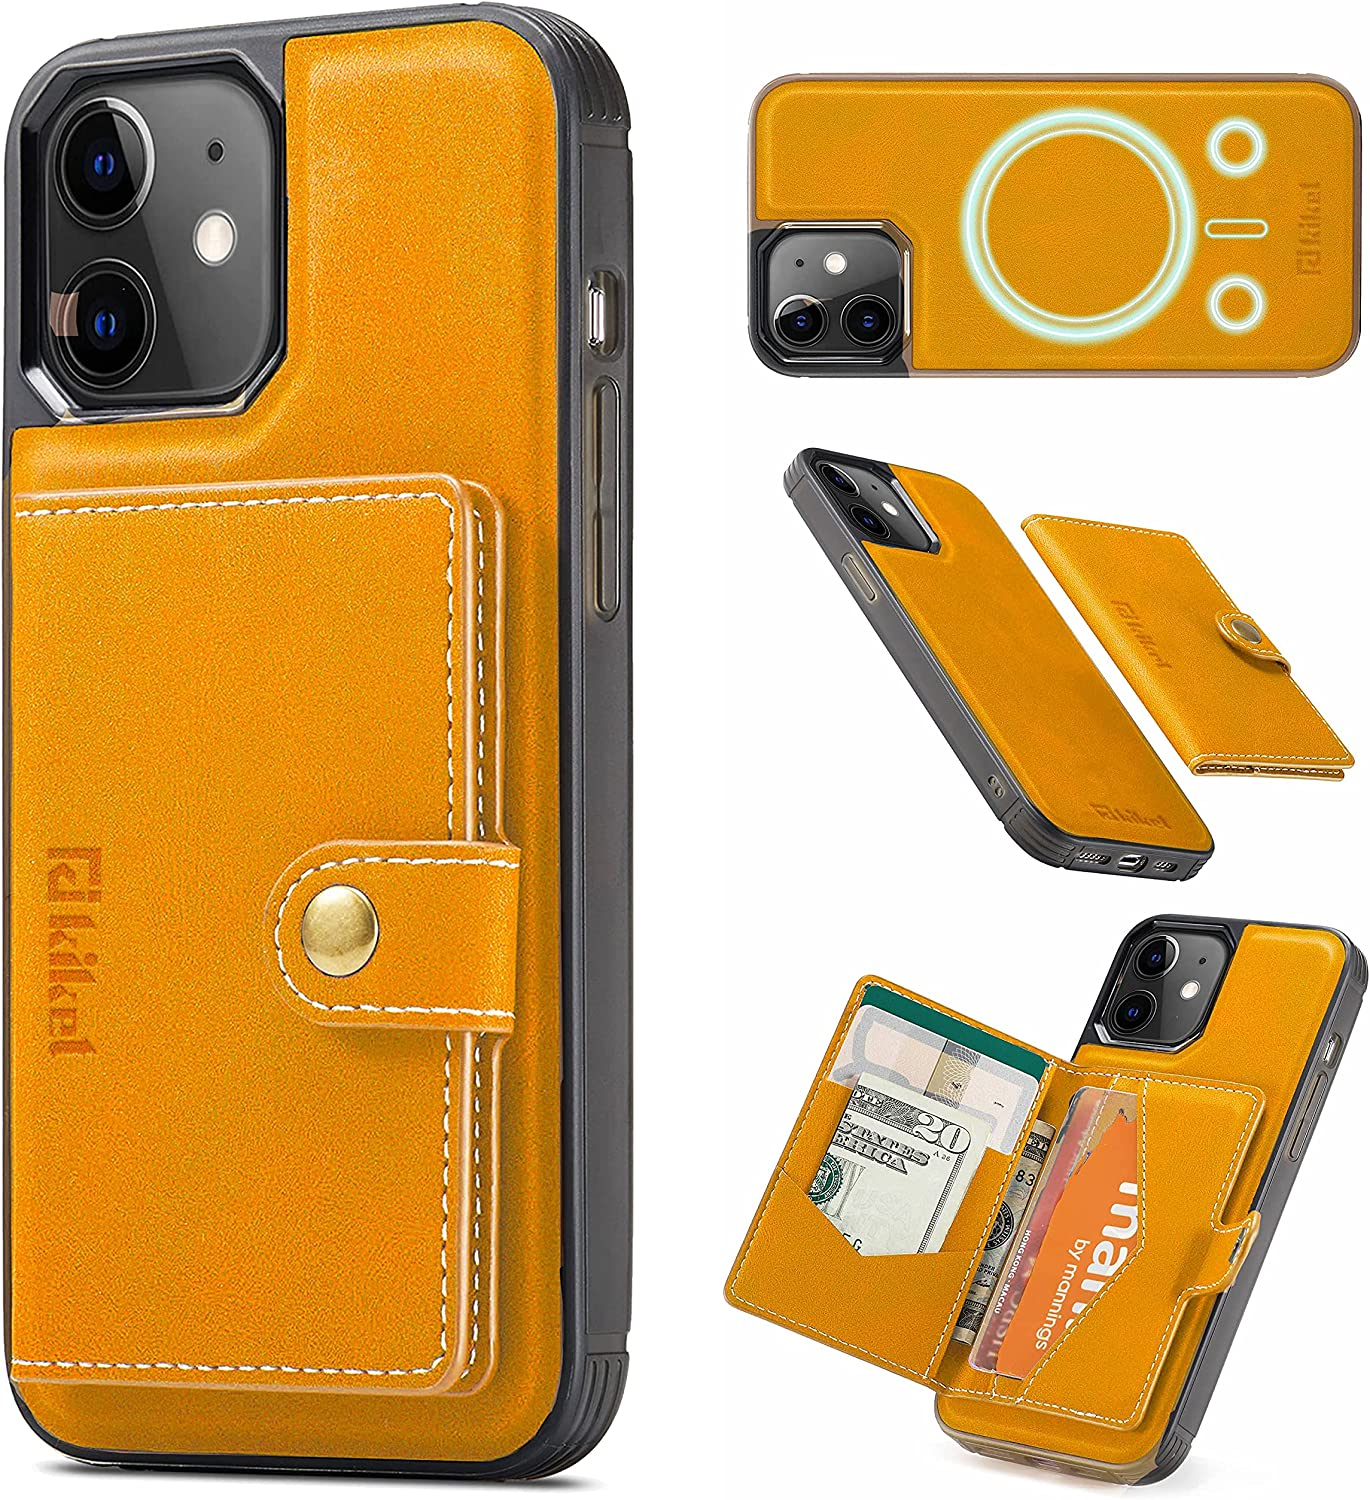 KIKET Magnetic Leather Case [1x Magnetic Yellow Leather Wallet Card Holder] Designed for iPhone 12 Pro Max Case [Mil-Grade Drop Tested] [Kickstand Feature] Compatible with All MagSafe Accessories